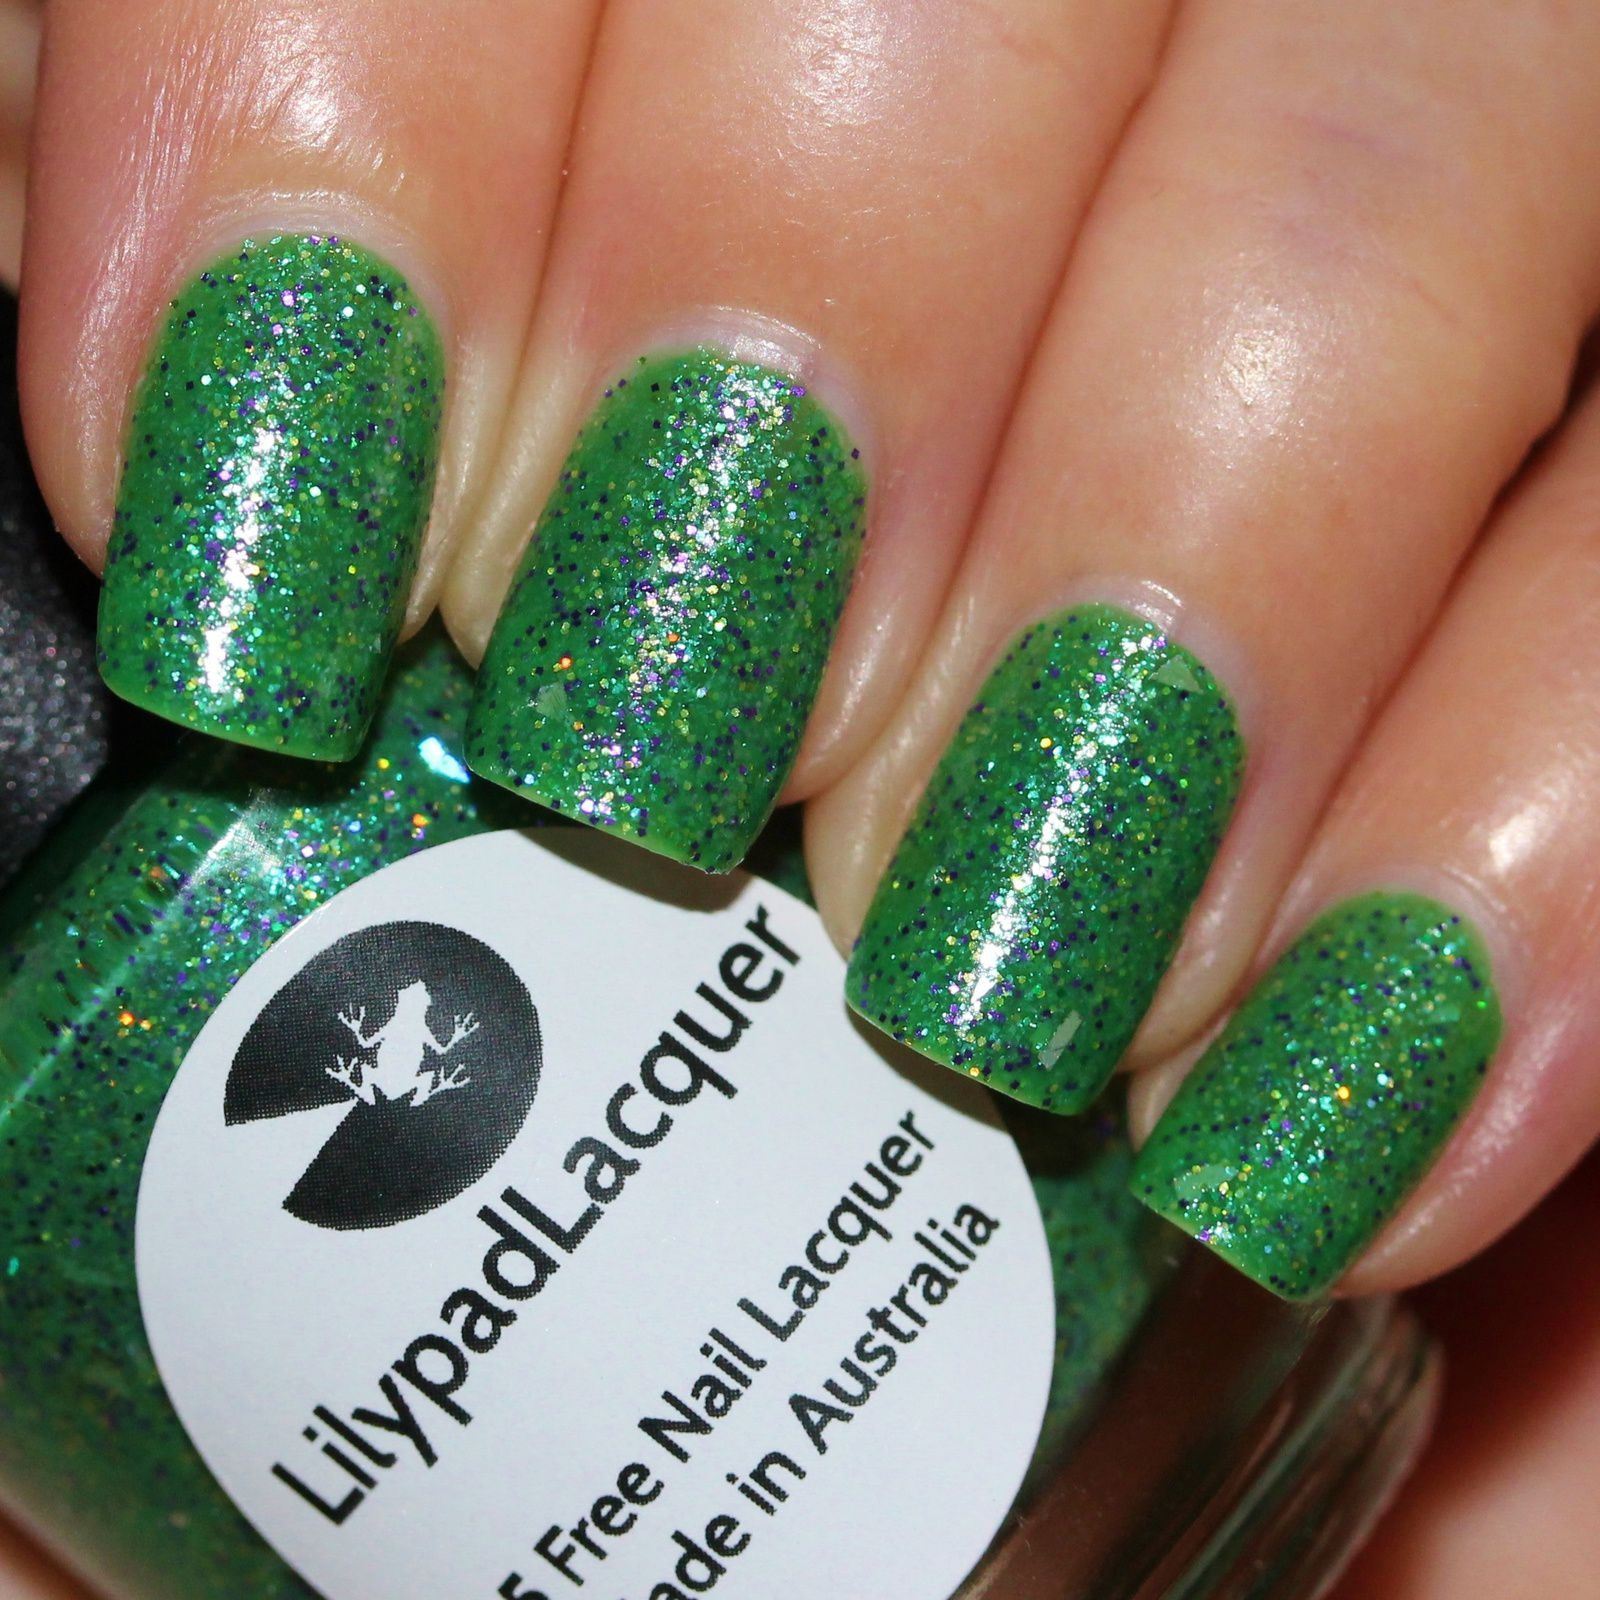 Lilypad Lacquer Tornadus (2 coats, no top coat)